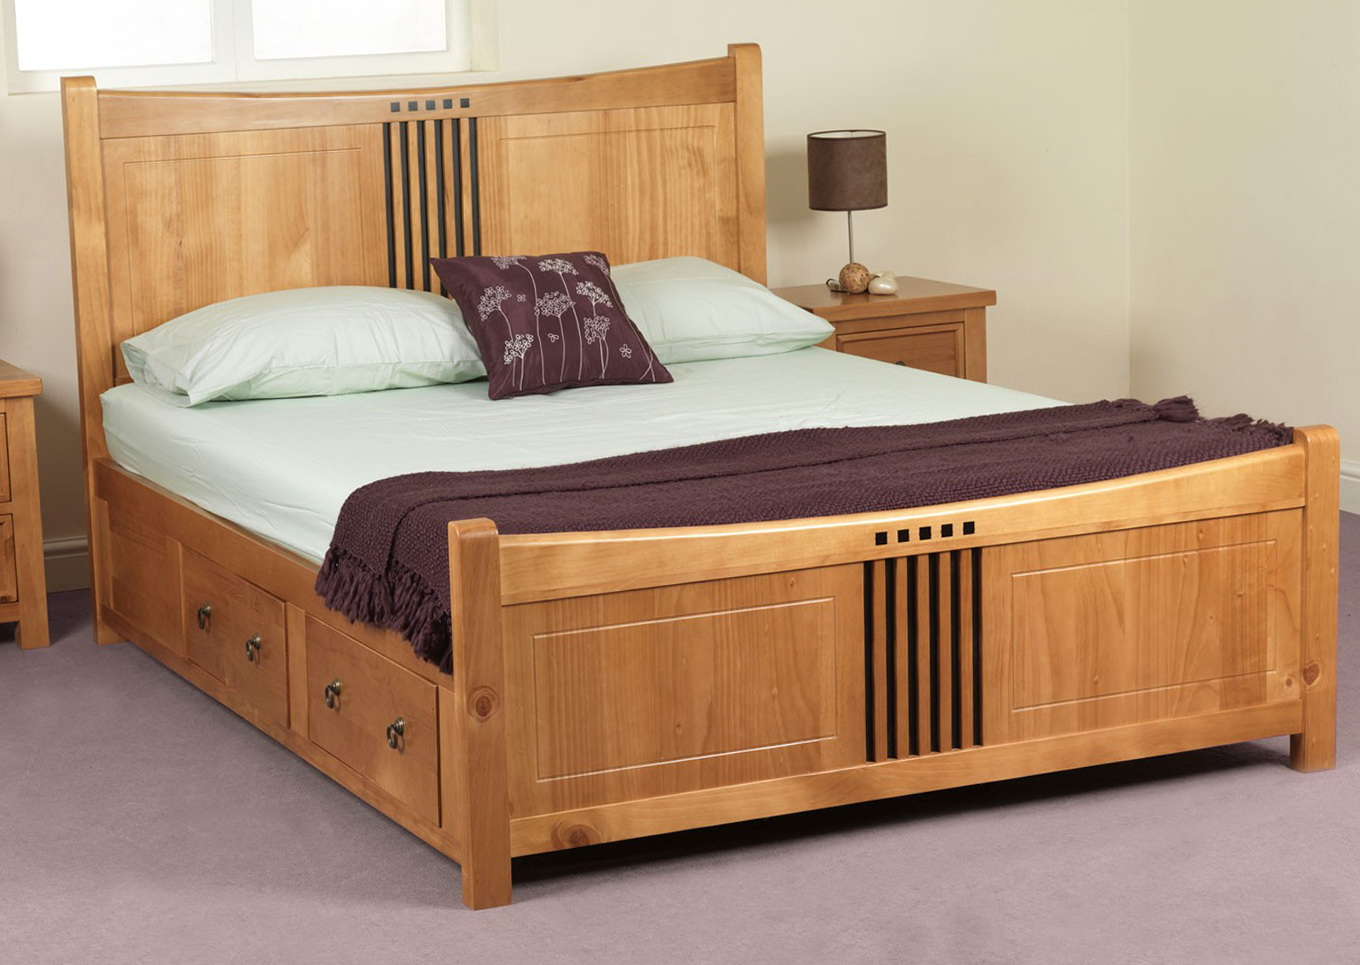 King Size Bed Frames For Sale